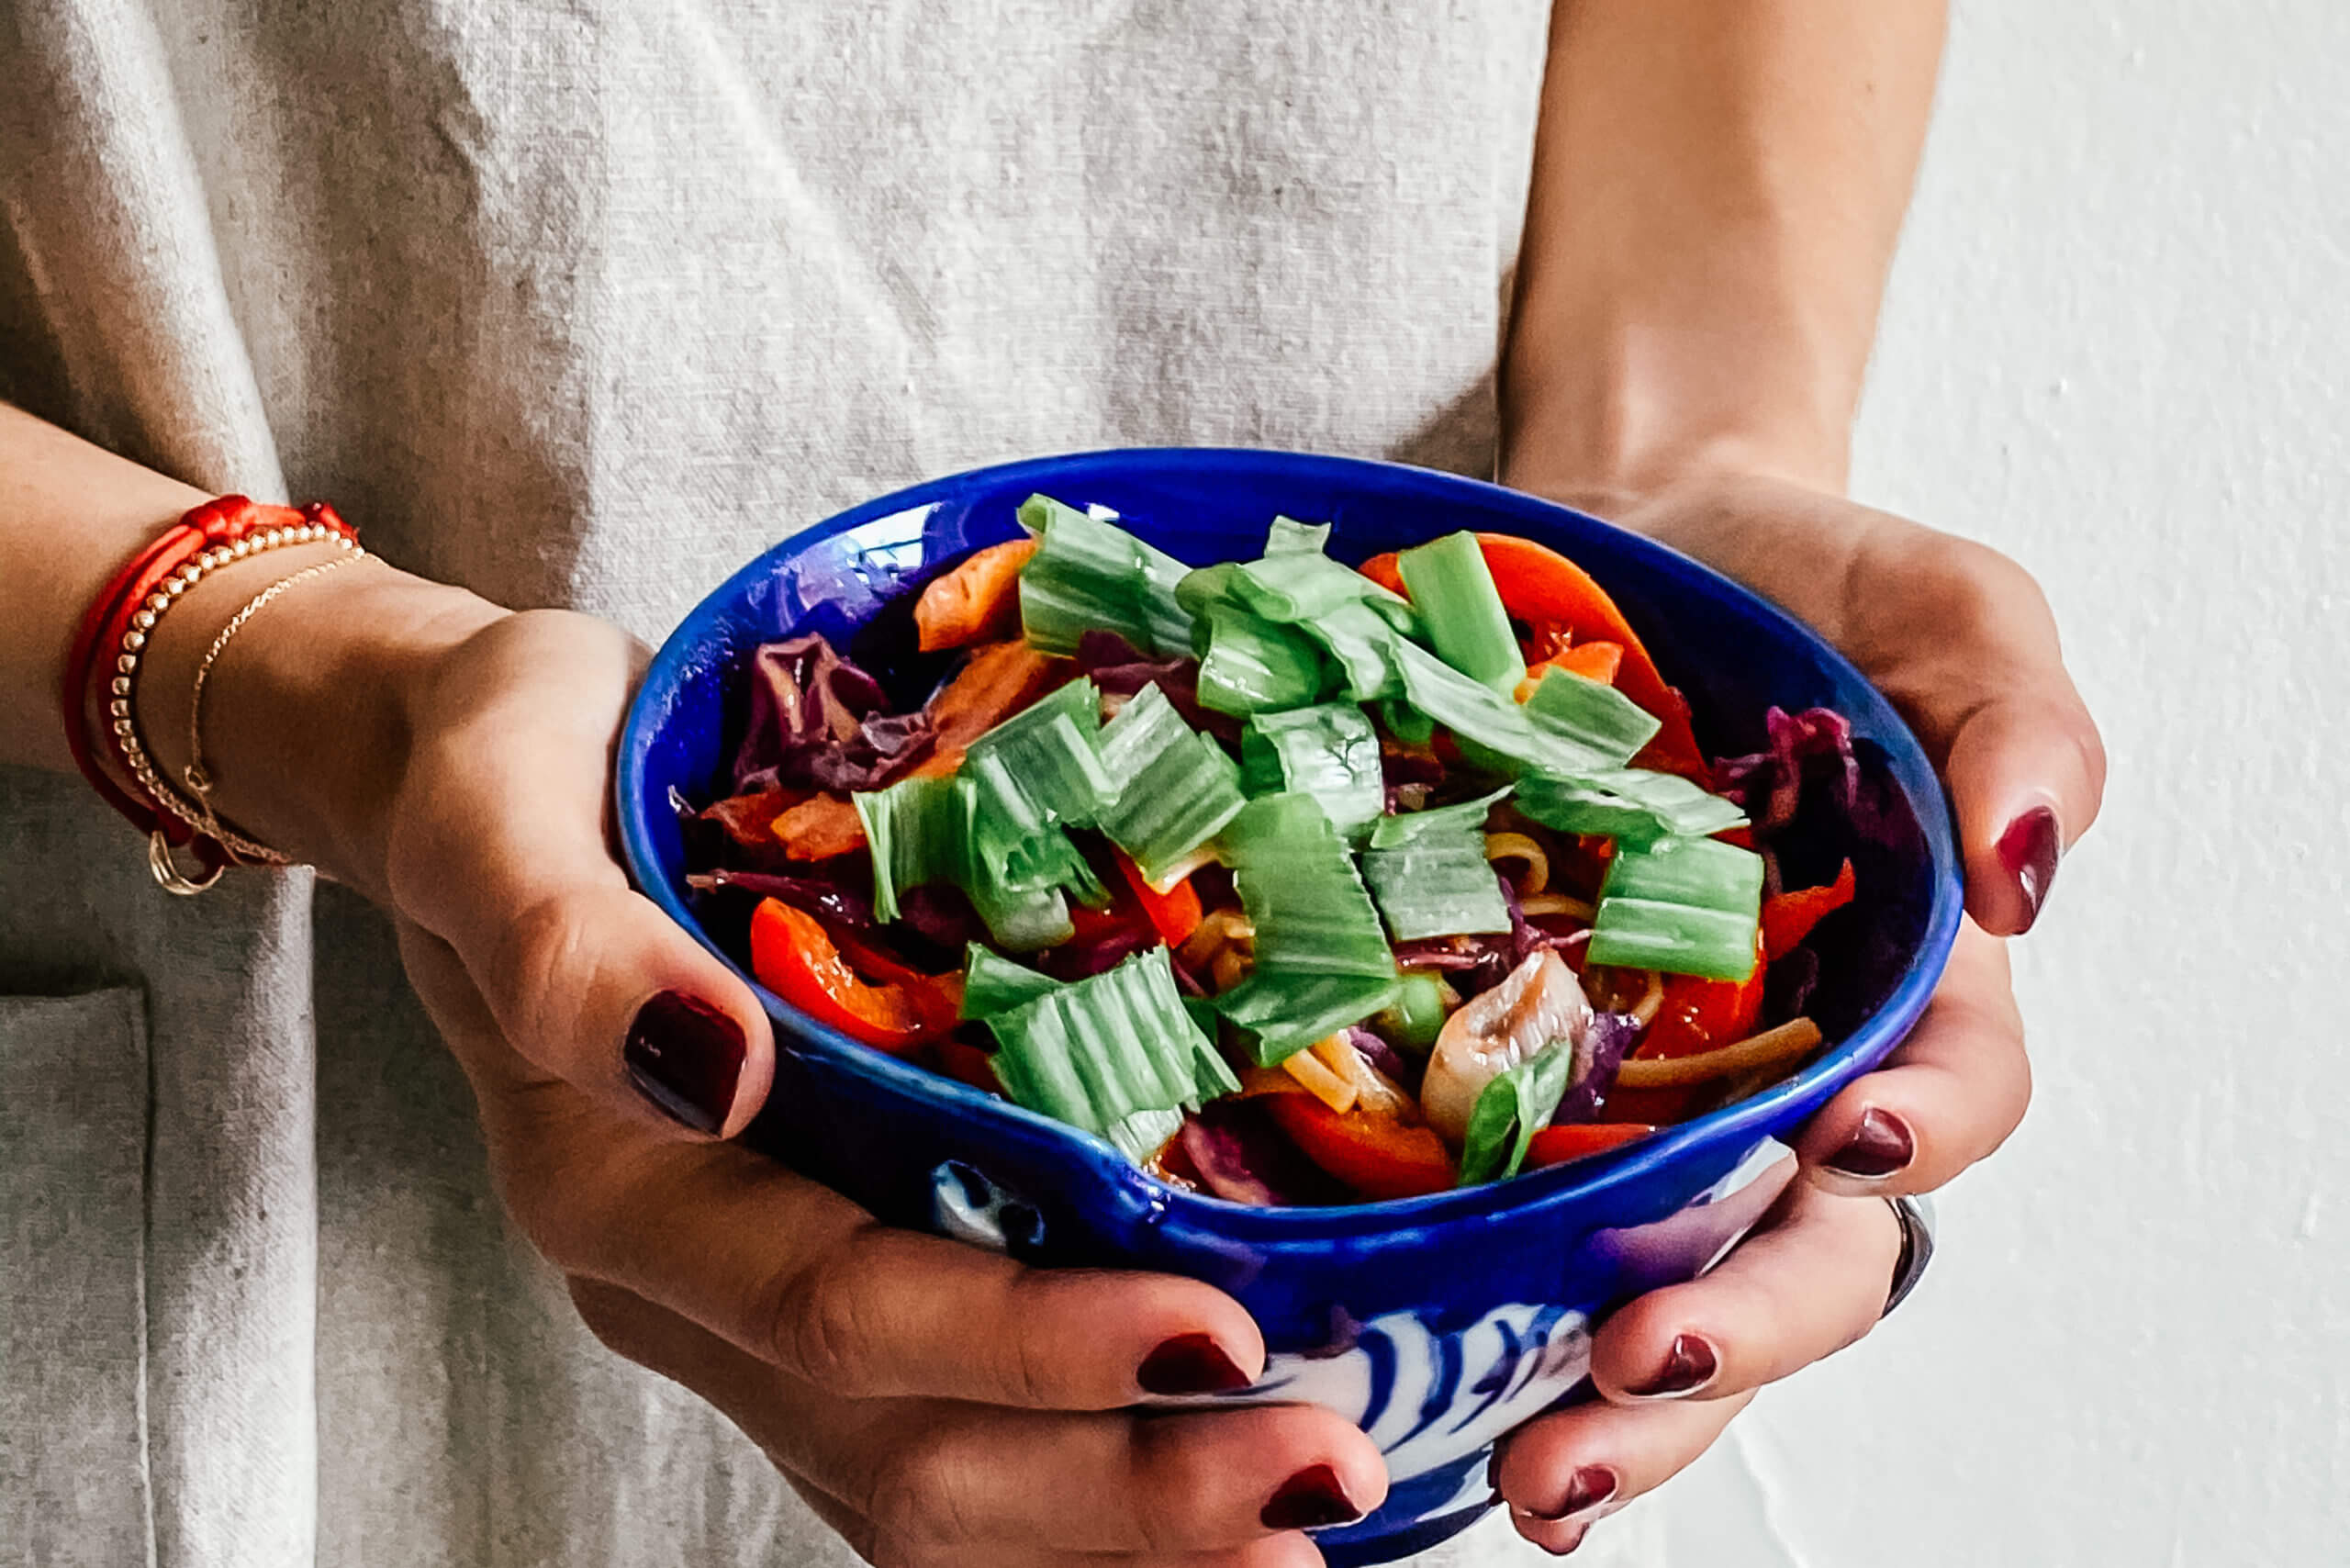 Sustainable and Vegan Lifestyle influencer shares a seasonal healthy, easy dinner recipes for your family!!!